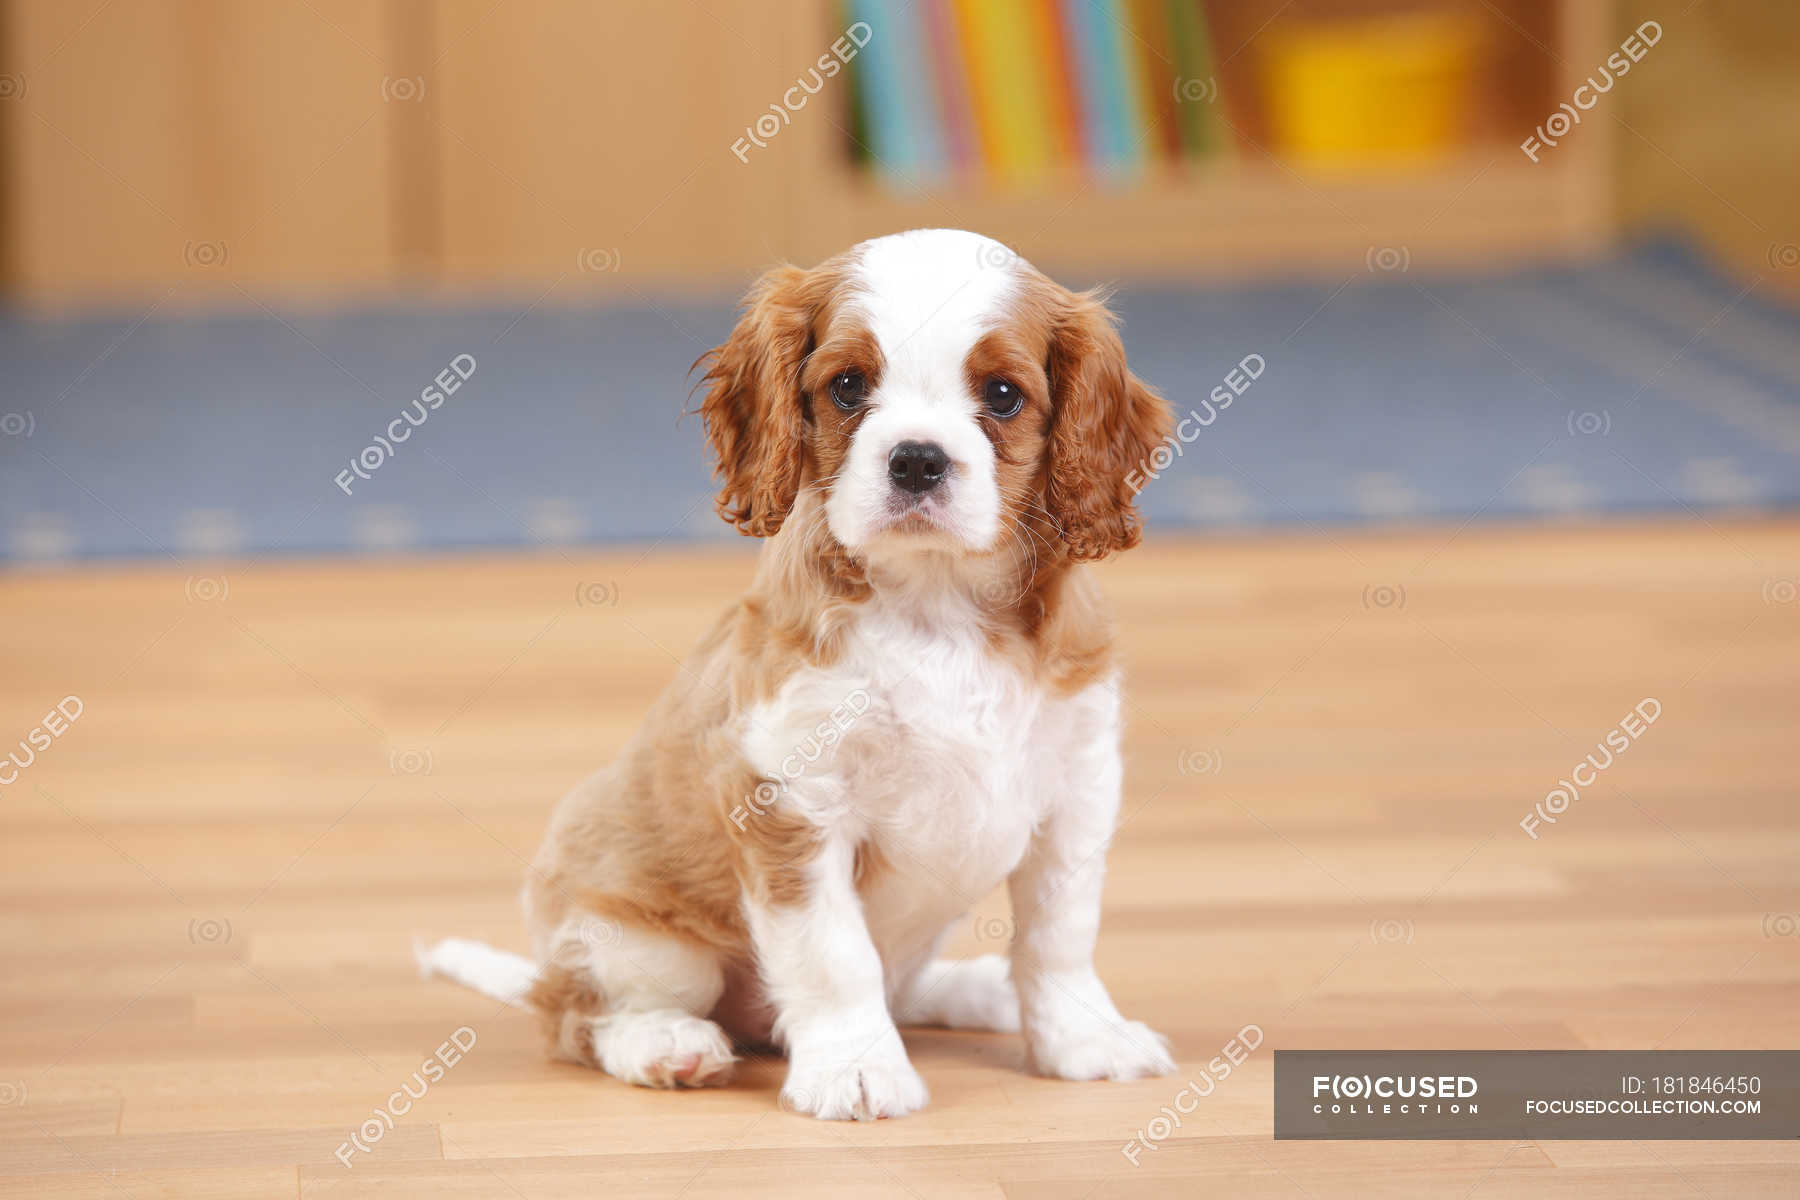 Cavalier King Charles Spaniel Puppy Sitting On Wooden Floor Cute Doggy Stock Photo 181846450